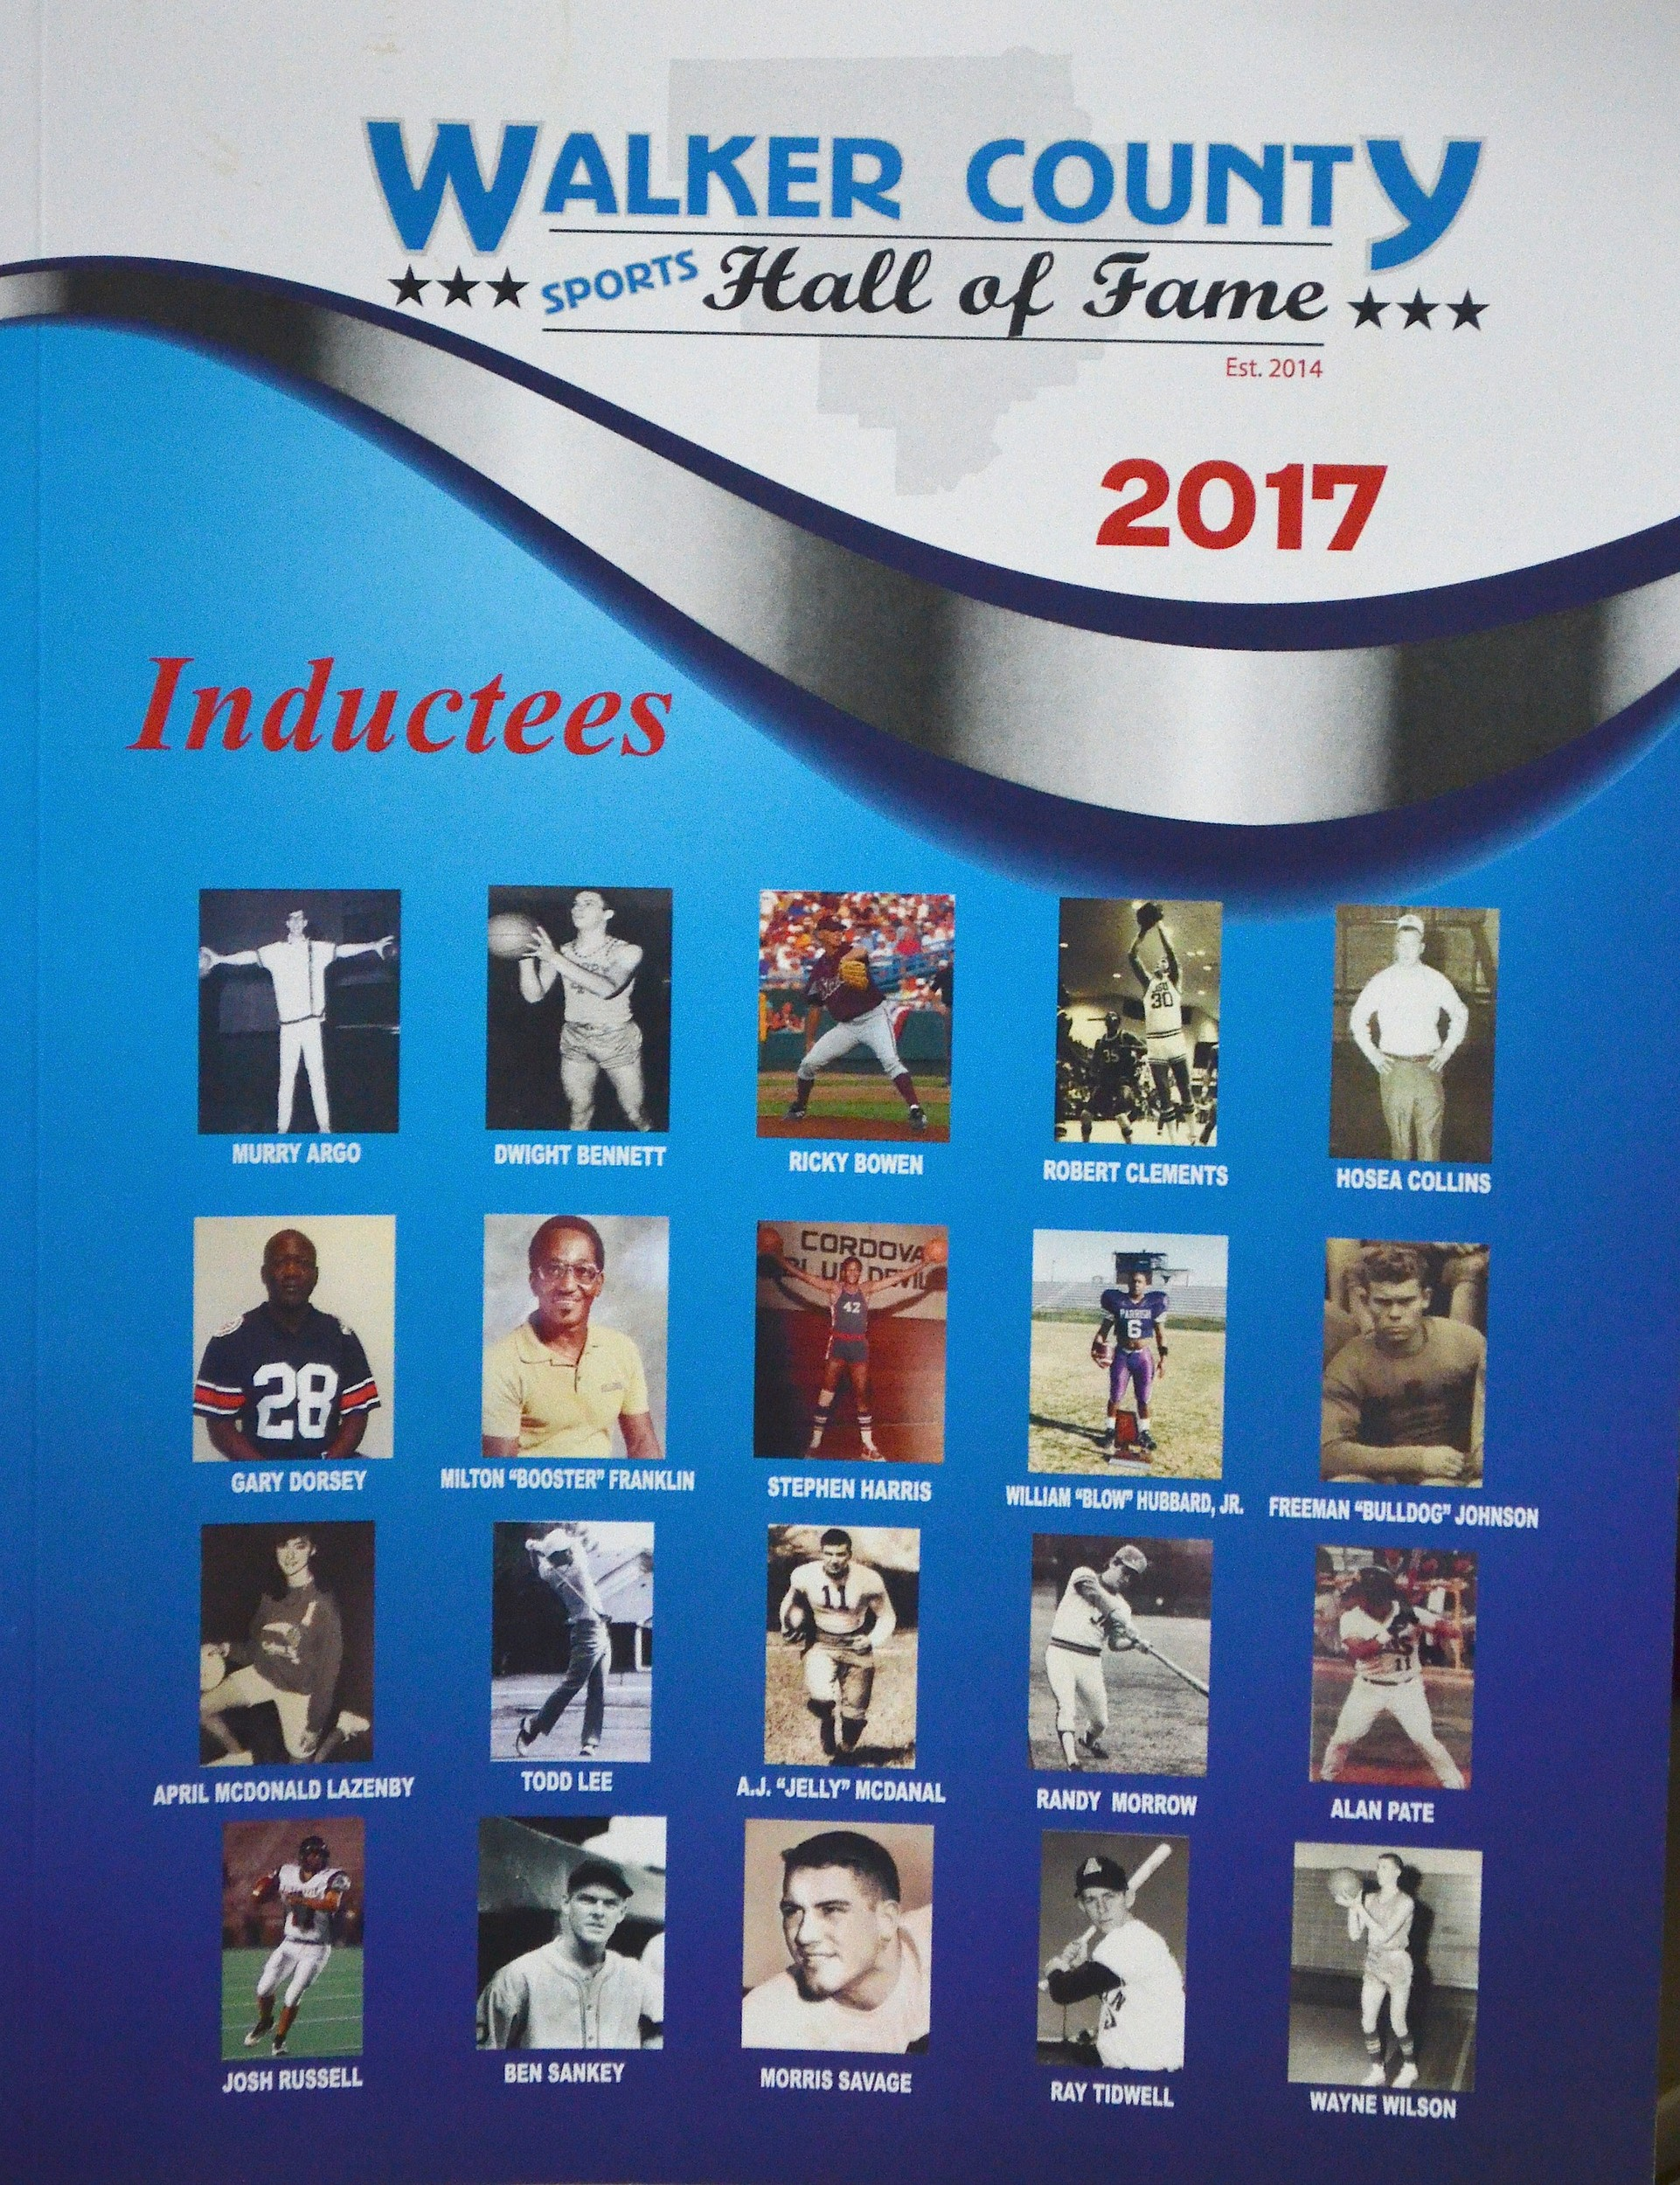 The 2017 Walker County Sports Hall of Fame class will be inducted on Saturday.